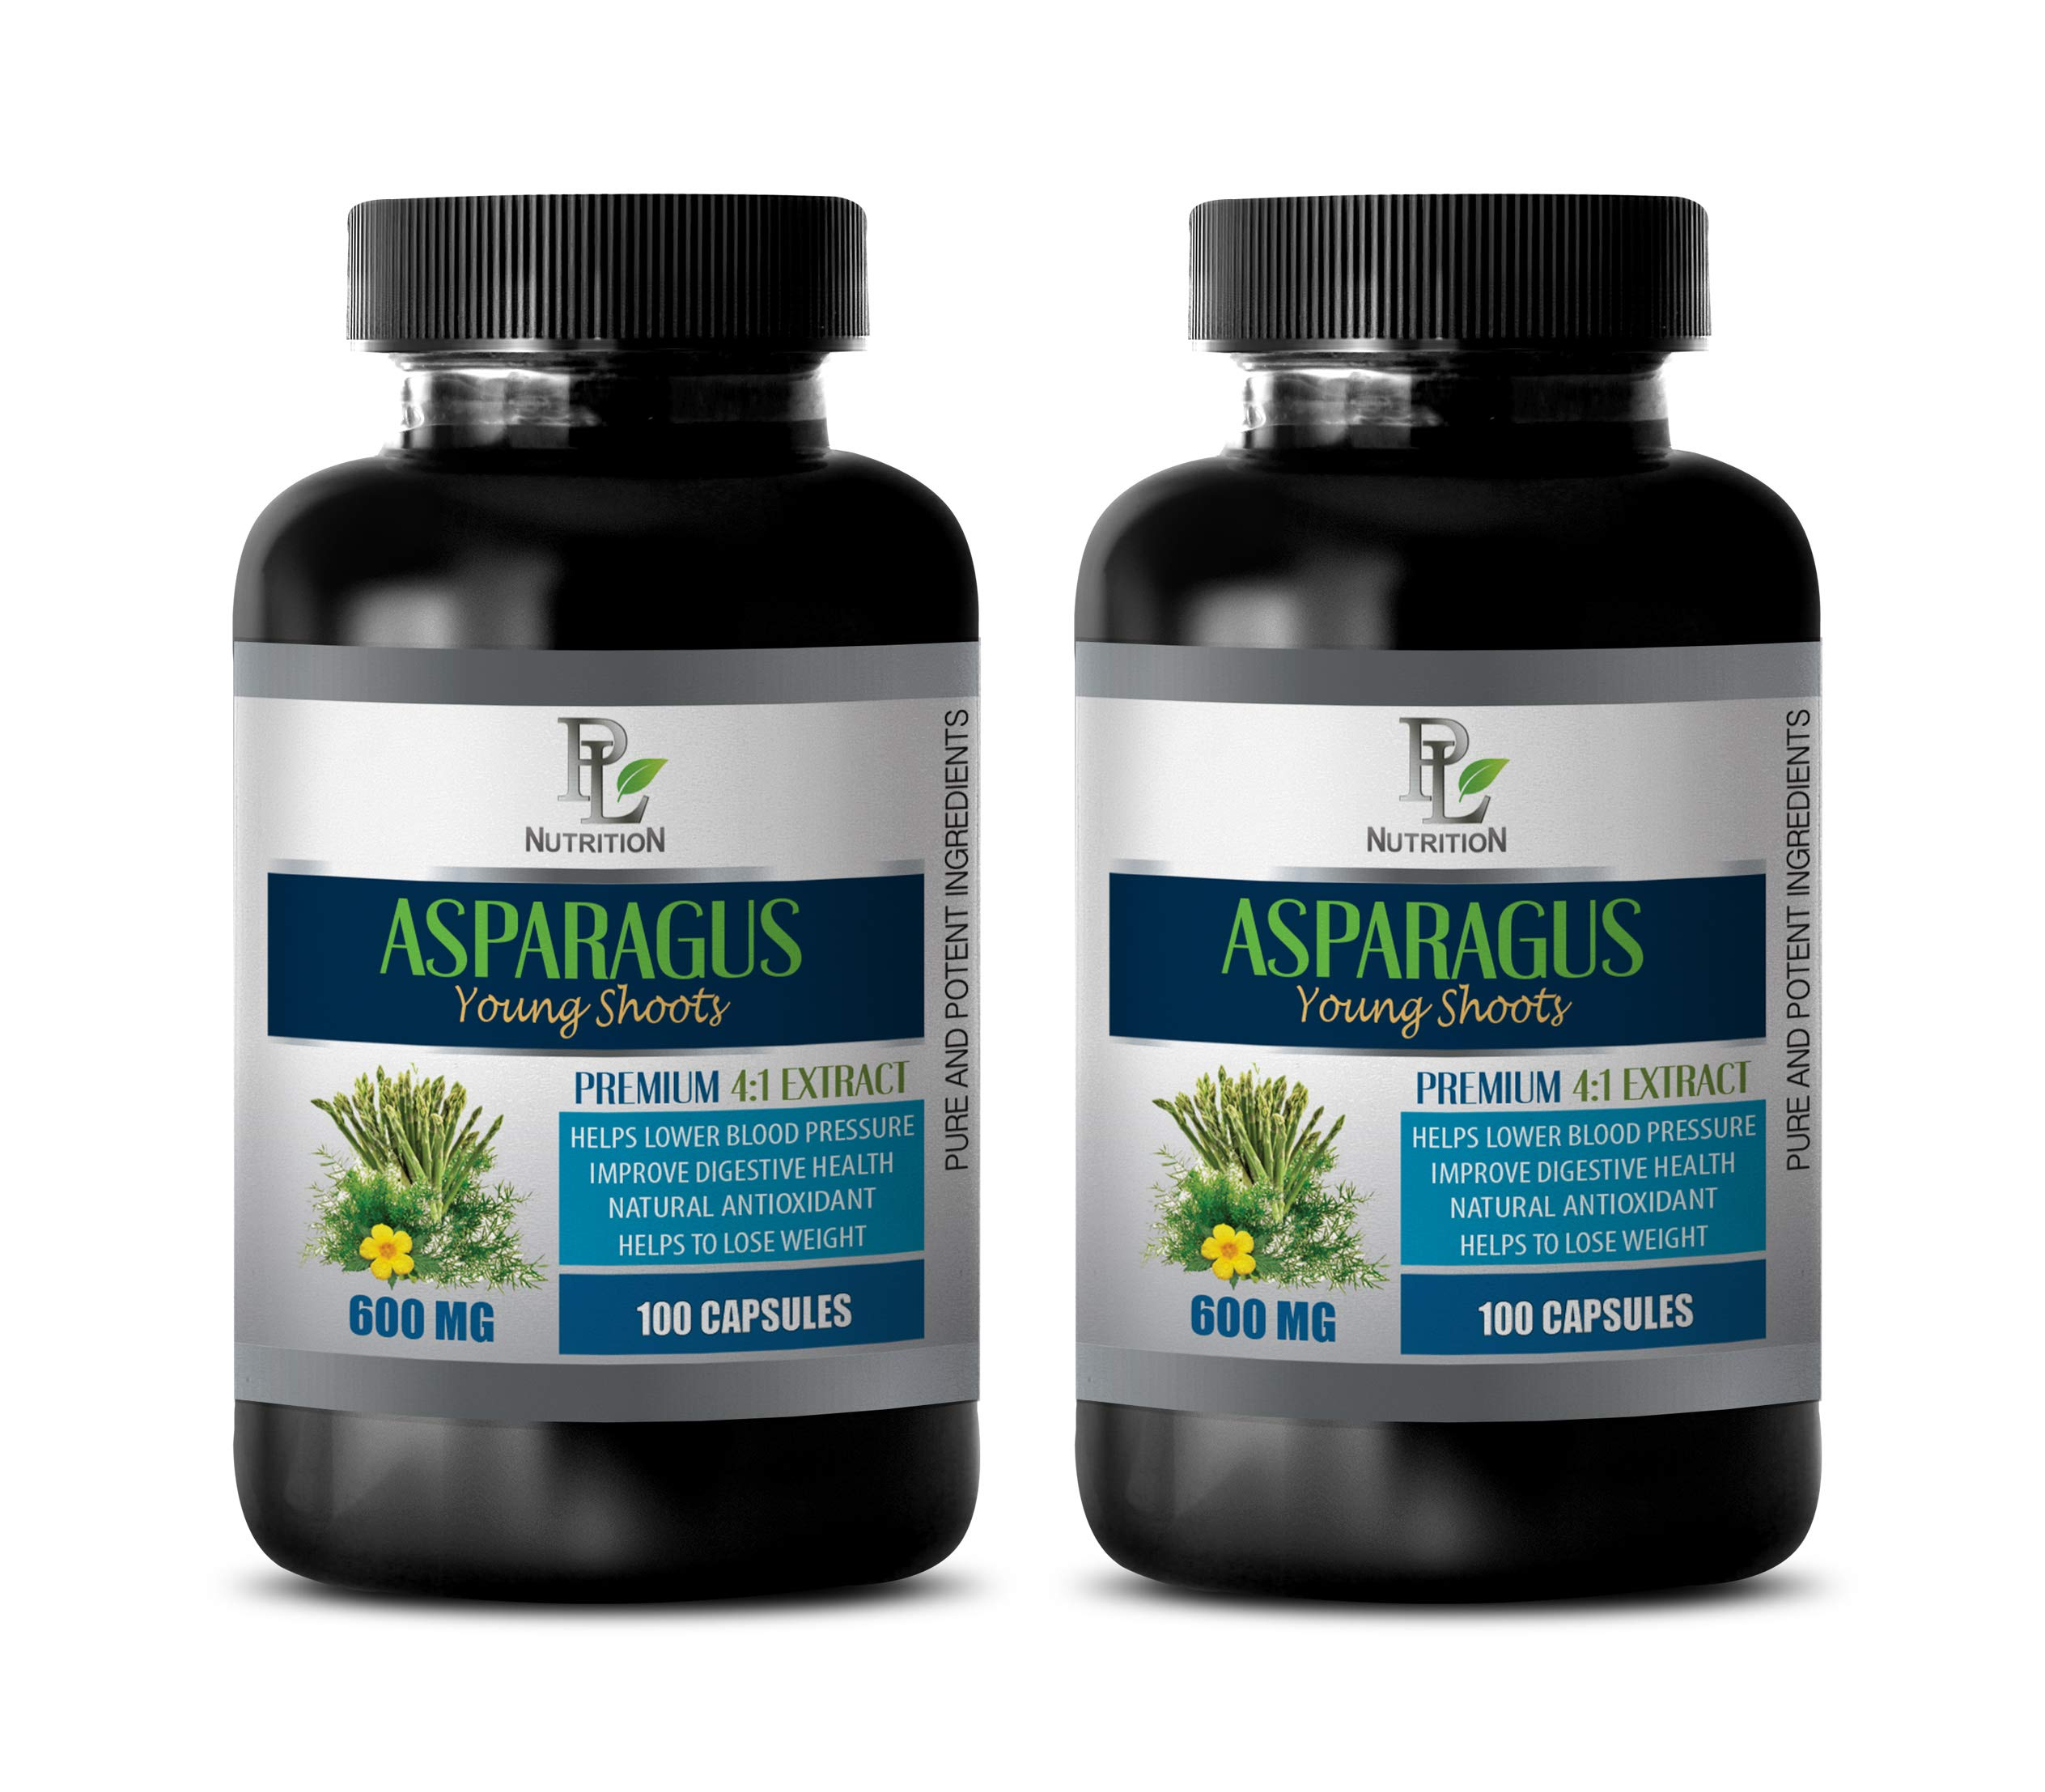 Heart Health Supplements for Women - Asparagus Young Shoots Extract 600MG - Premium 4:1 Extract - antioxidant Weight Loss - 2 Bottles 200 Capsules